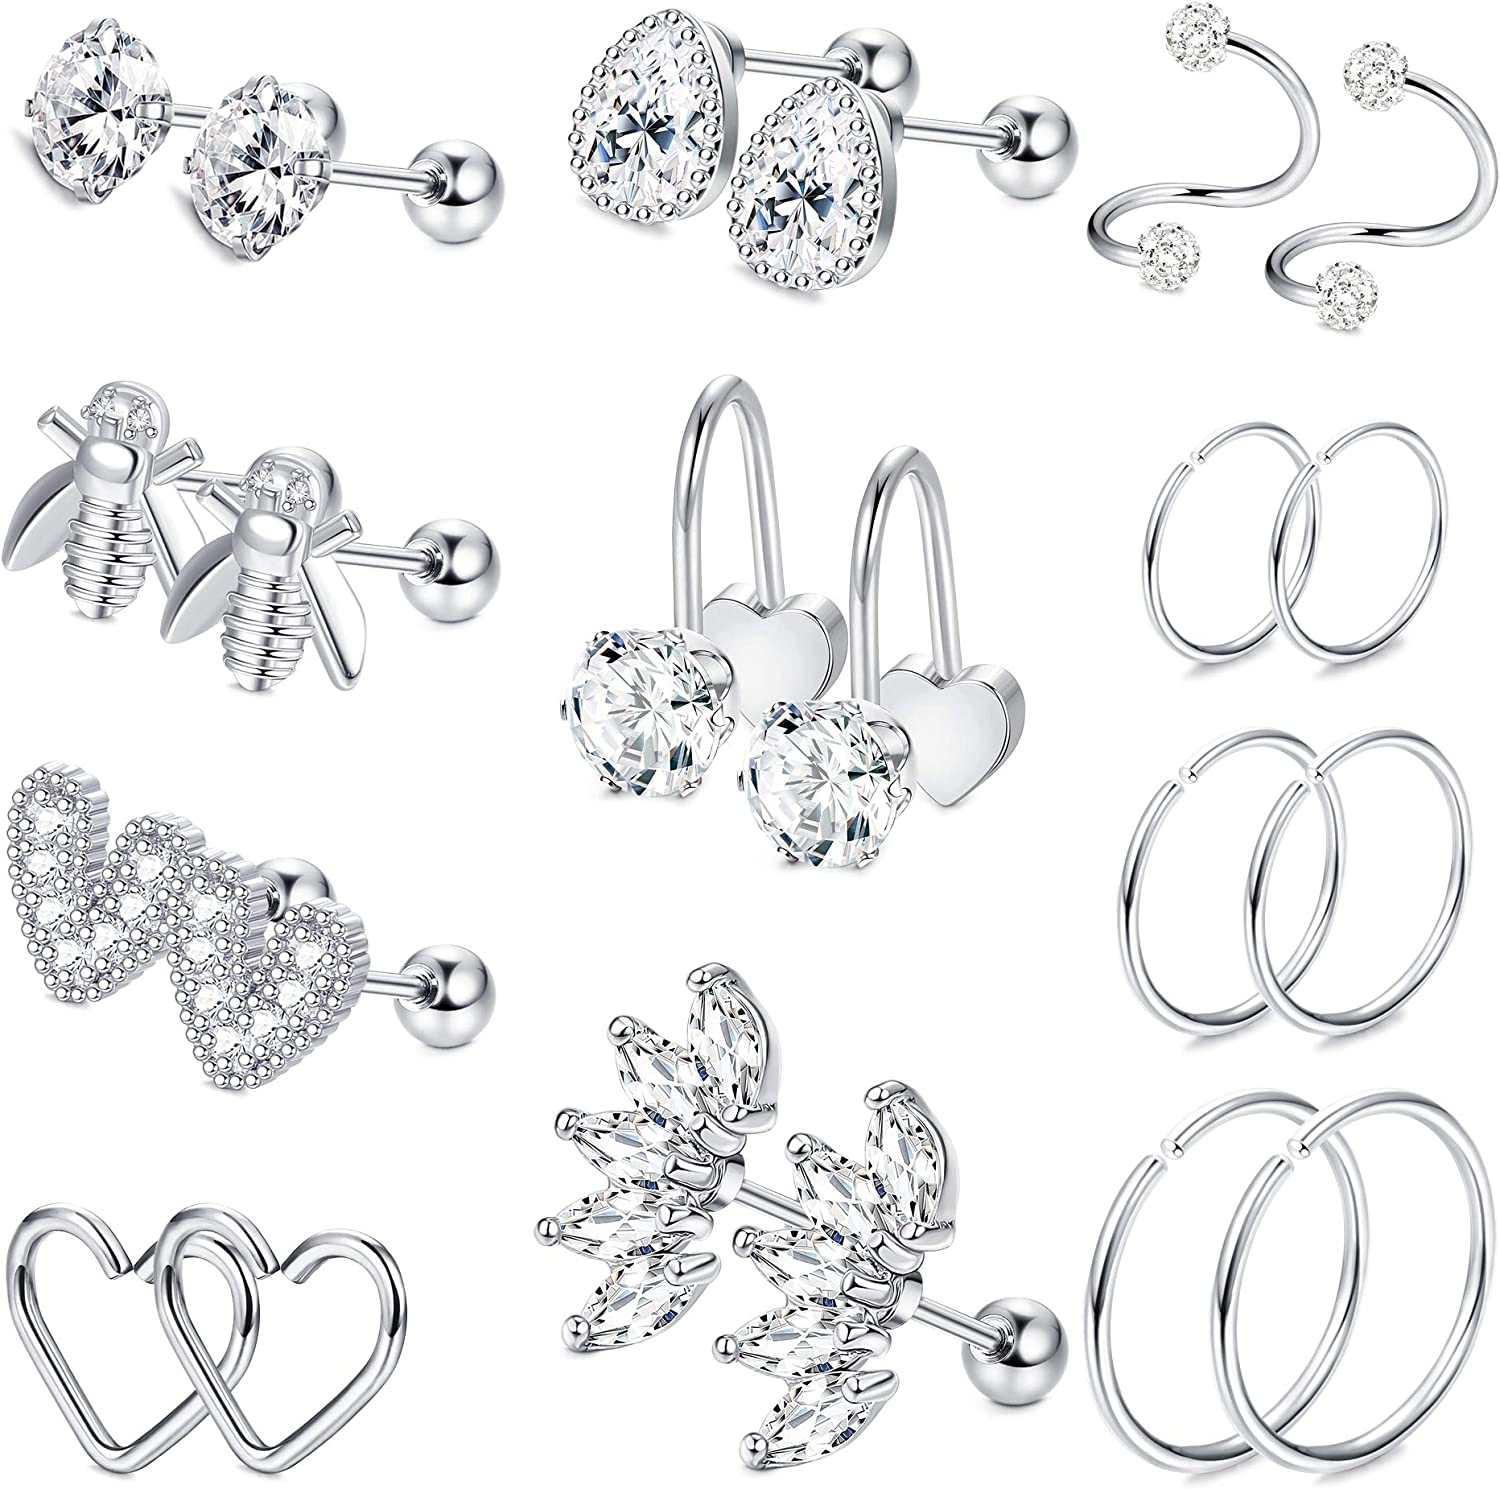 LOYALLOOK 11 Pairs 16G Stainless Steel Bee Heart Shaped Helix Cartilage Tragus Stud Earring Hoops CZ Barbell Piercing Earrings Stud Body conch Piercing Jewelry